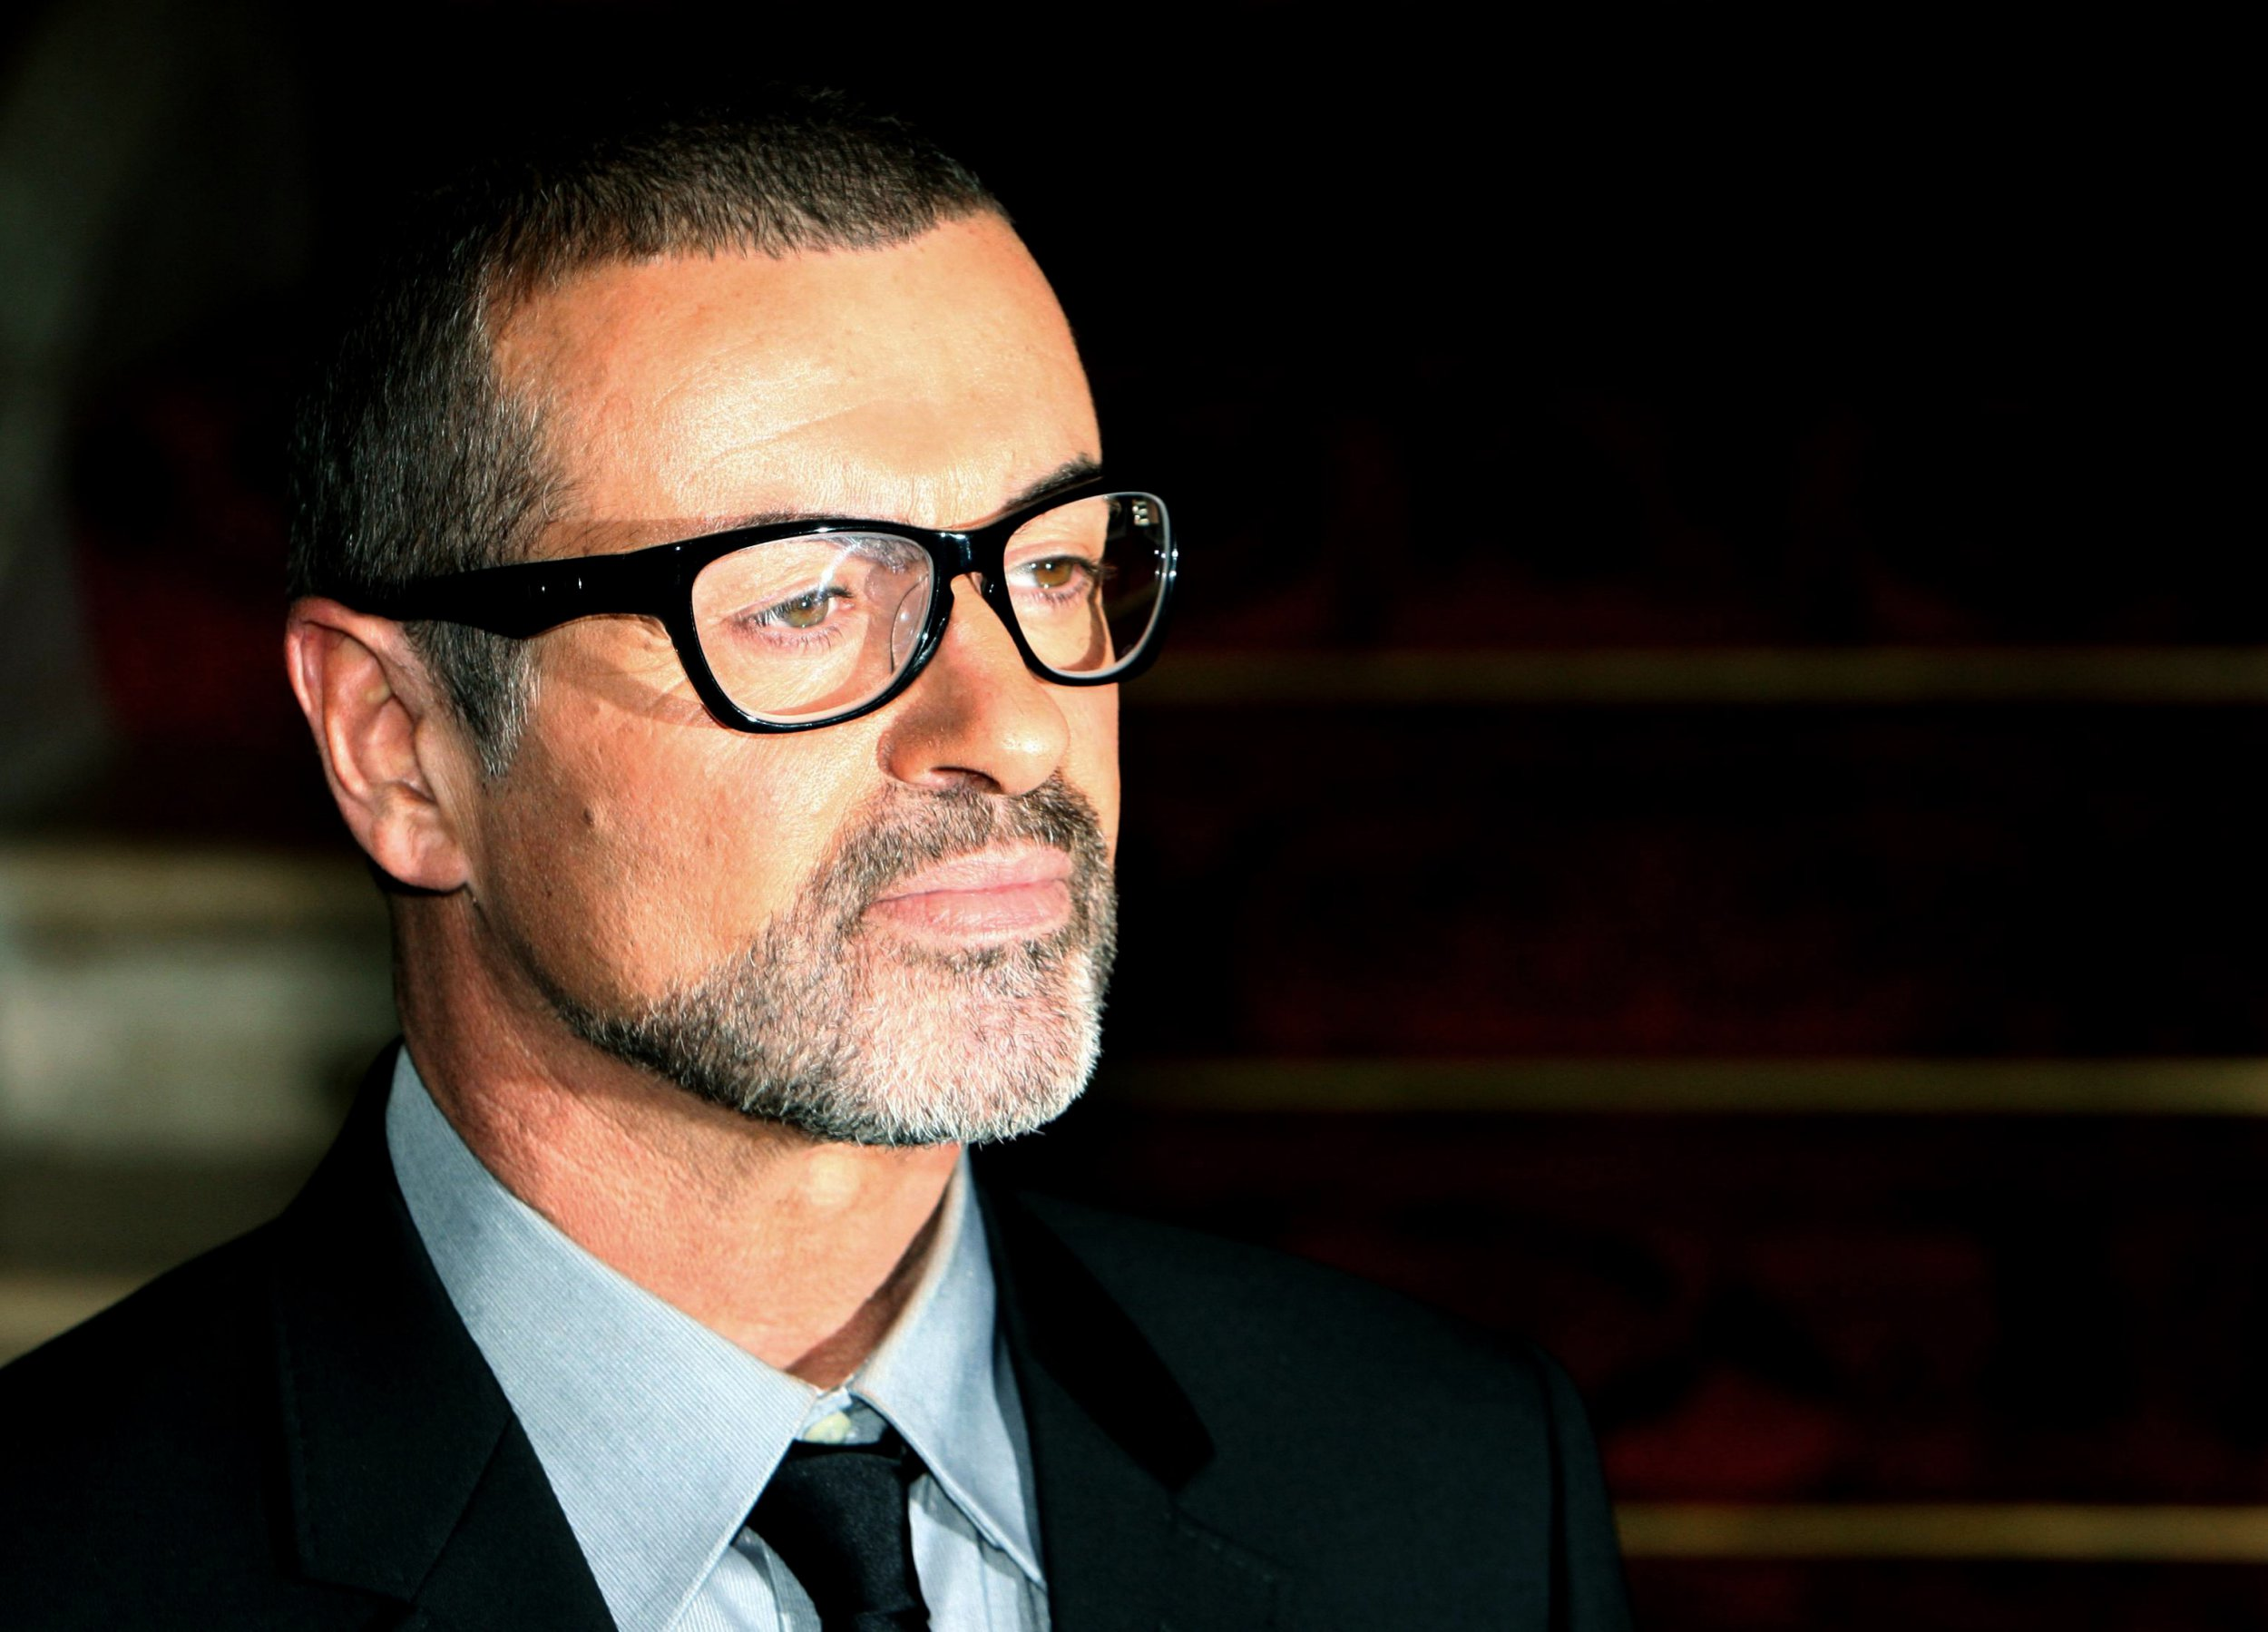 George Michael's family call on fans to say 'I love you' to friends and family this Christmas